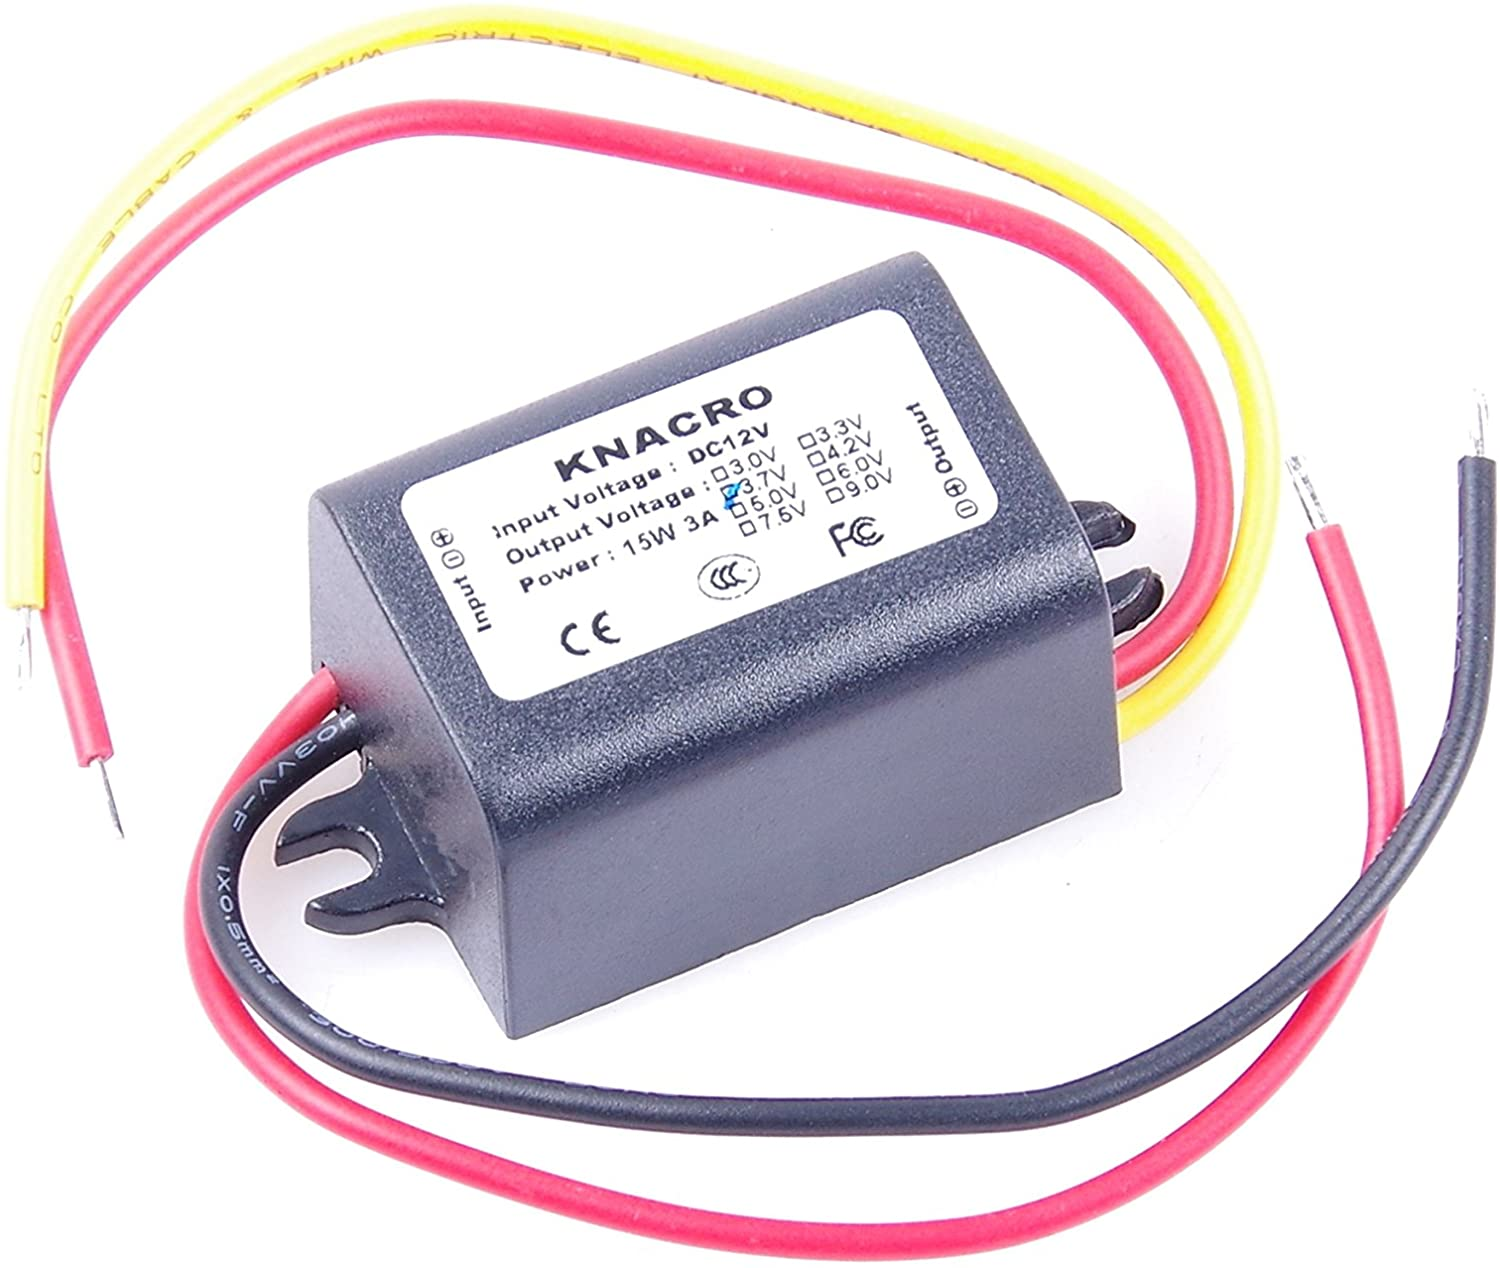 KNACRO DC-DC 12V to 3.7V 3A Step-Down Power Supply Module Car Power Converter Module Synchronous Buck Over-Temperature Over-Current Short Circuit Protection Suitable (DC 3.7V 3A, Black)